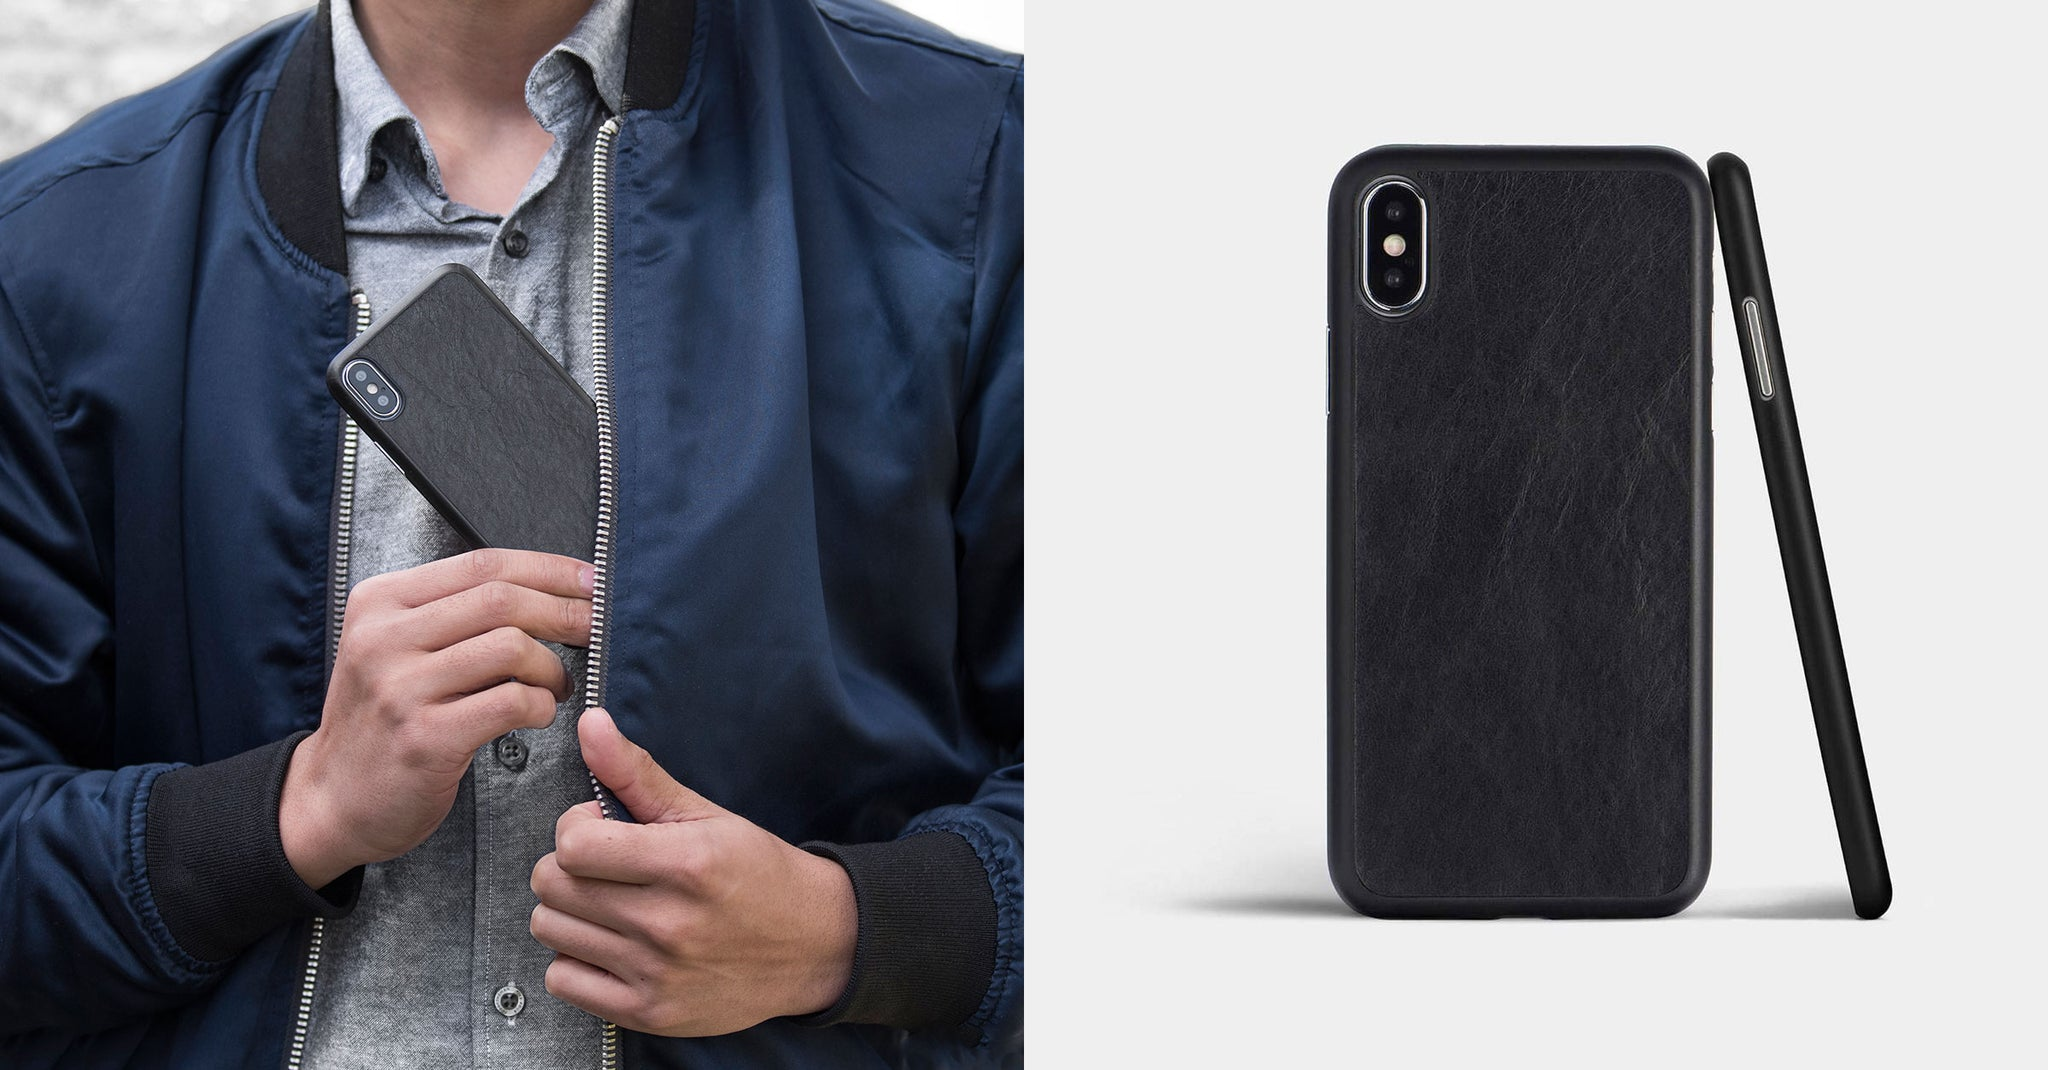 genuine leather iphone X case by totallee